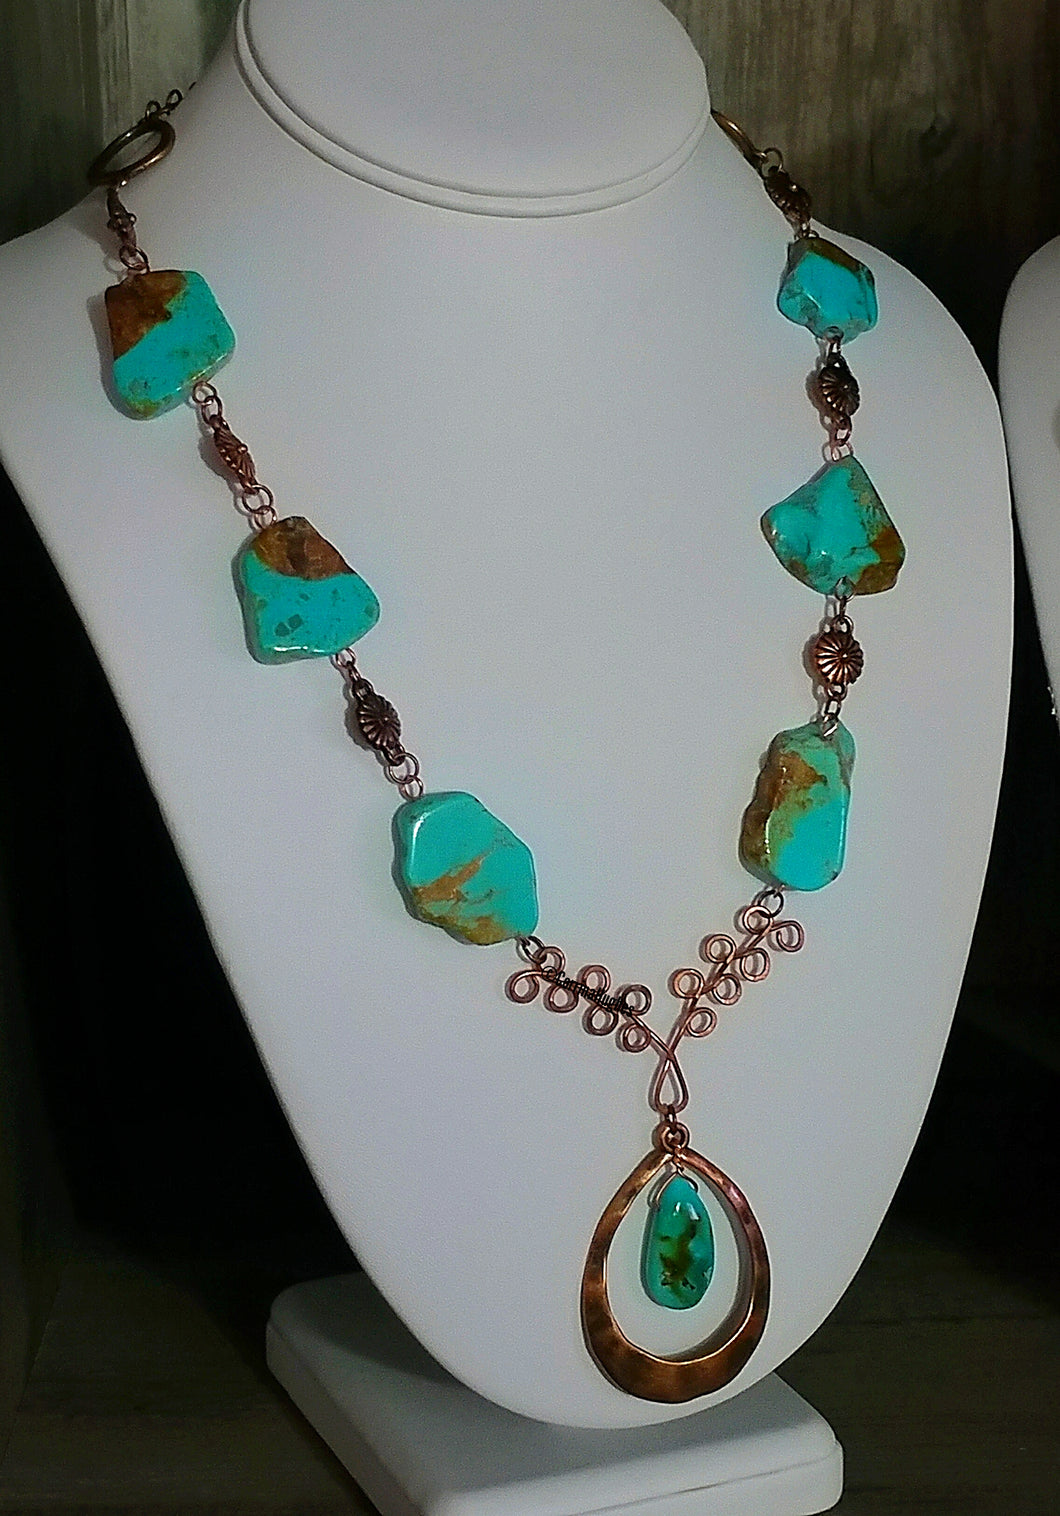 Sonora Skies Turquoise and Hammered Copper Necklace